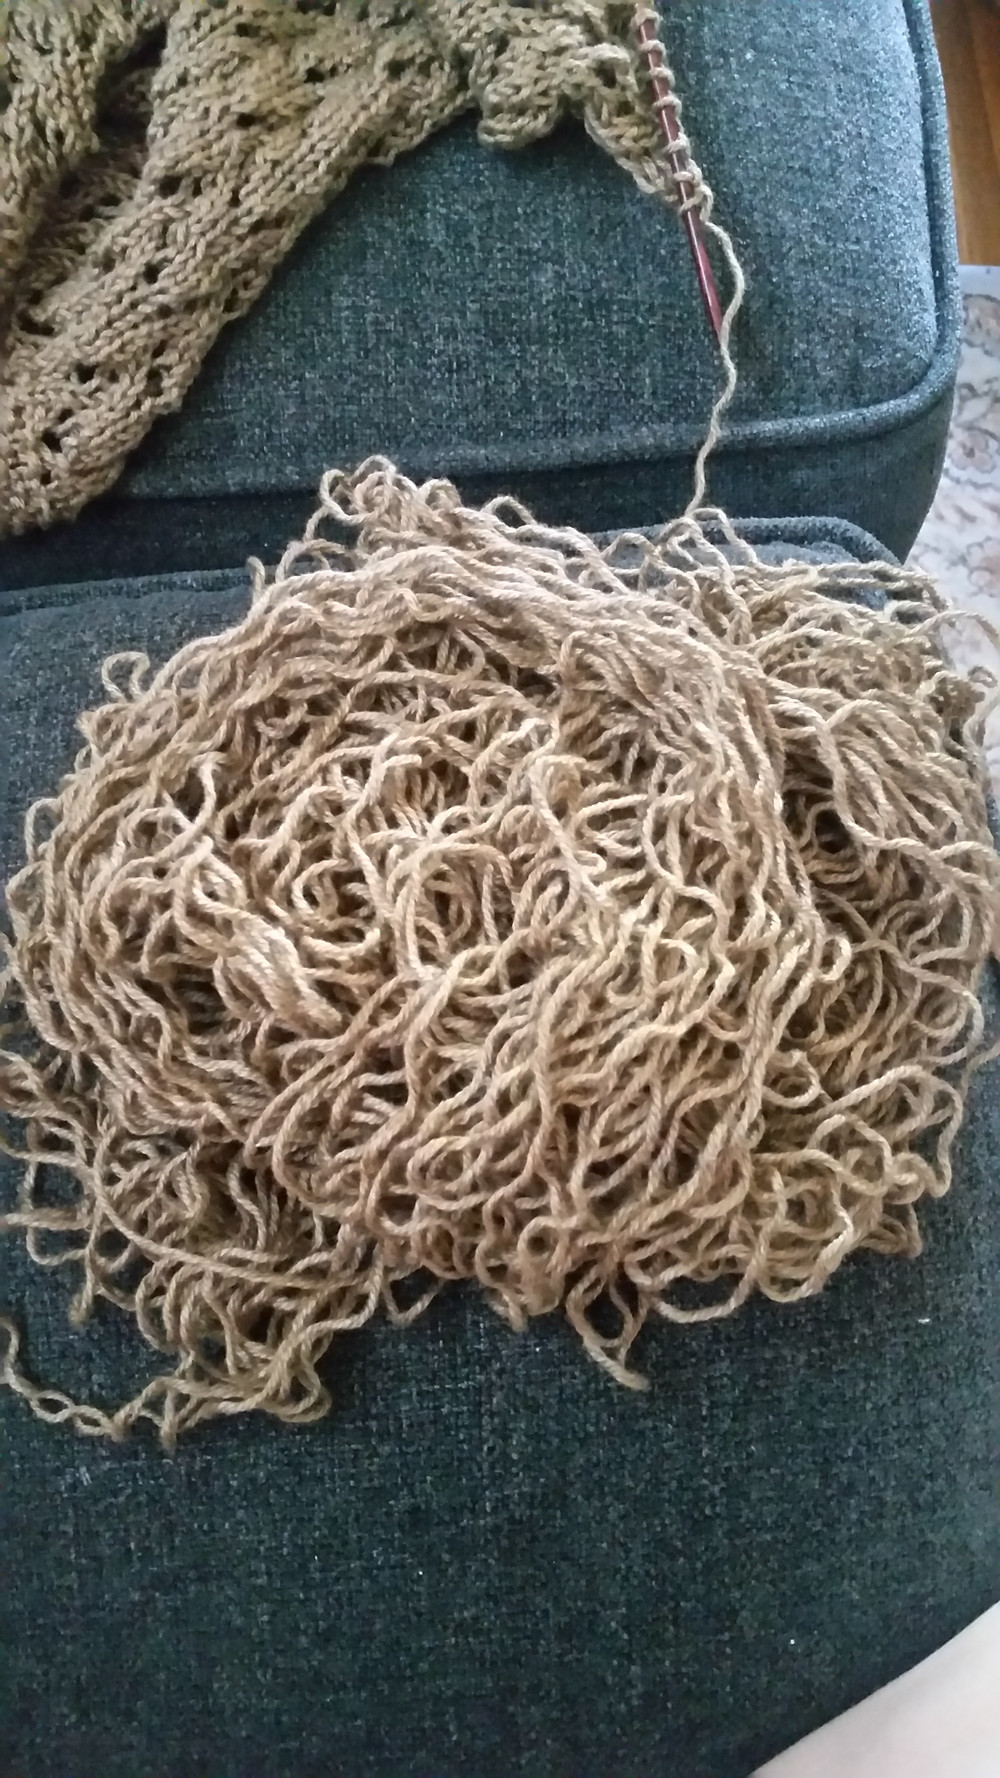 the pile of yarn at the end of the unraveling